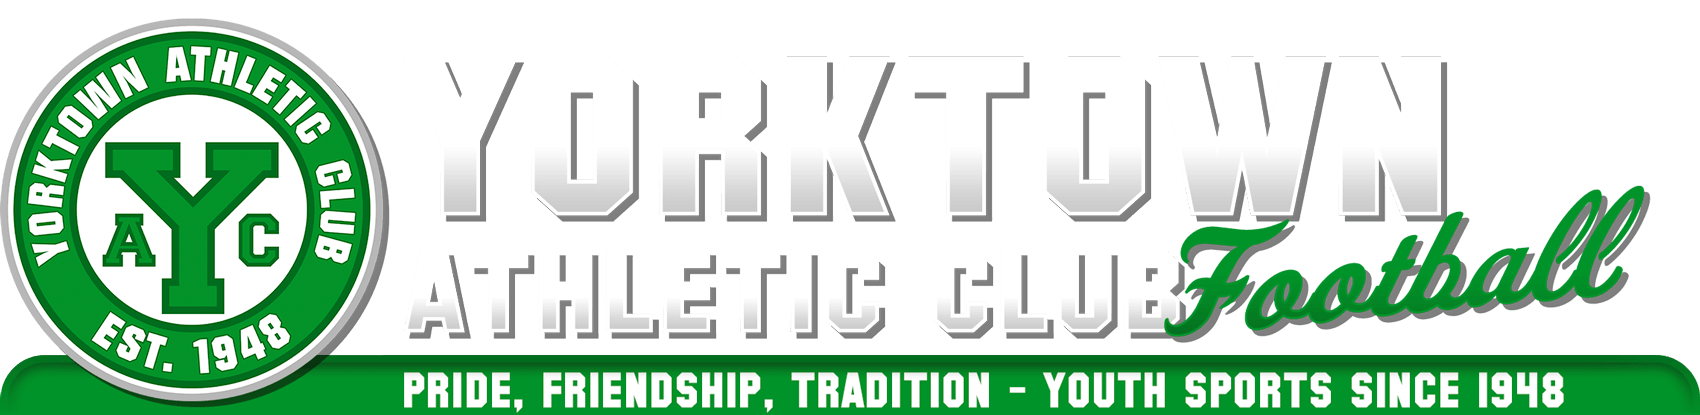 Yorktown Athletic Club, Football, Football, Goal, Field